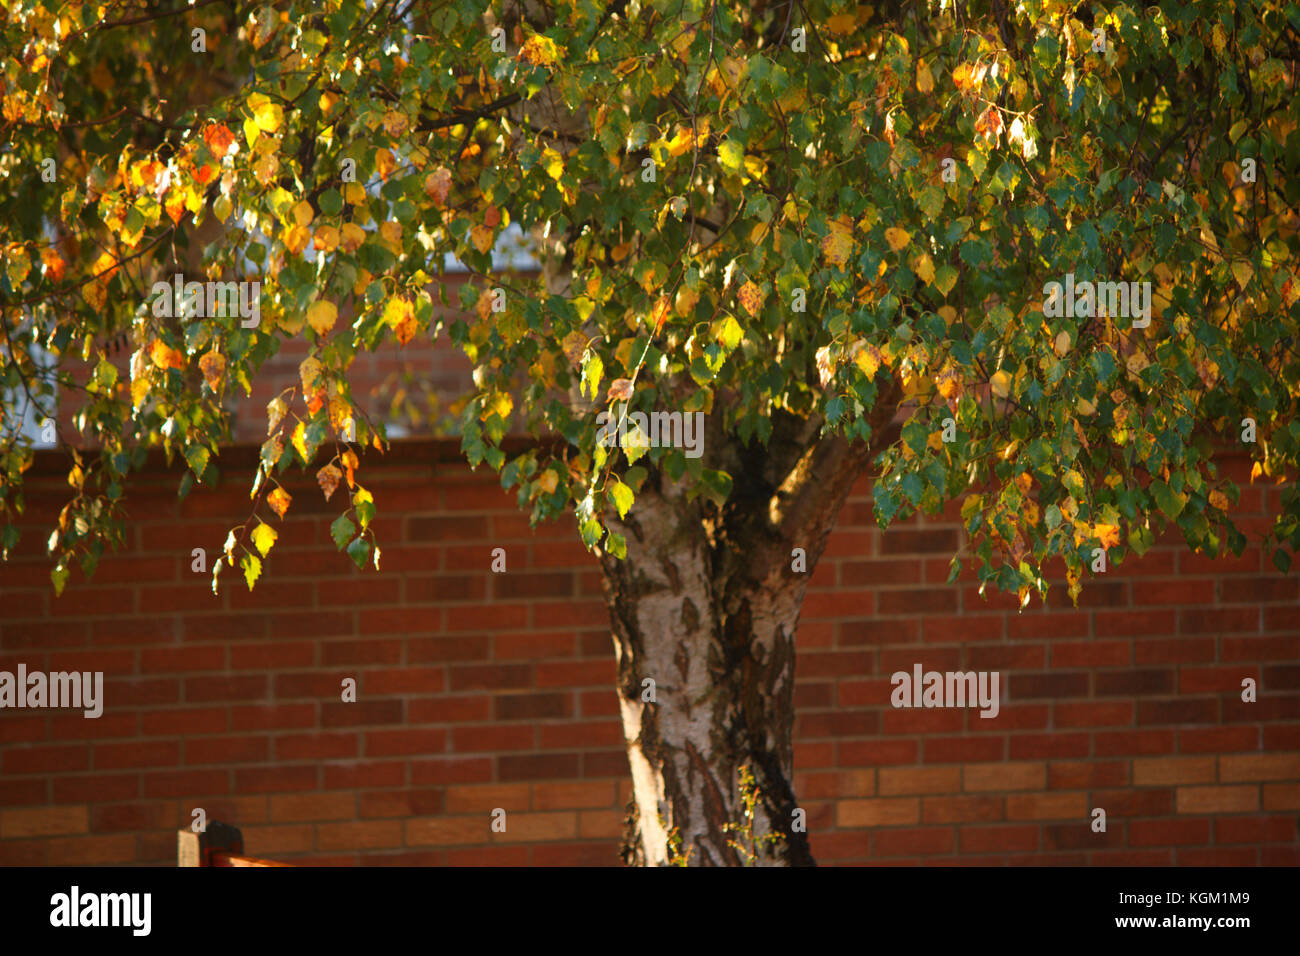 Autumn birch leaves in the city - Stock Image